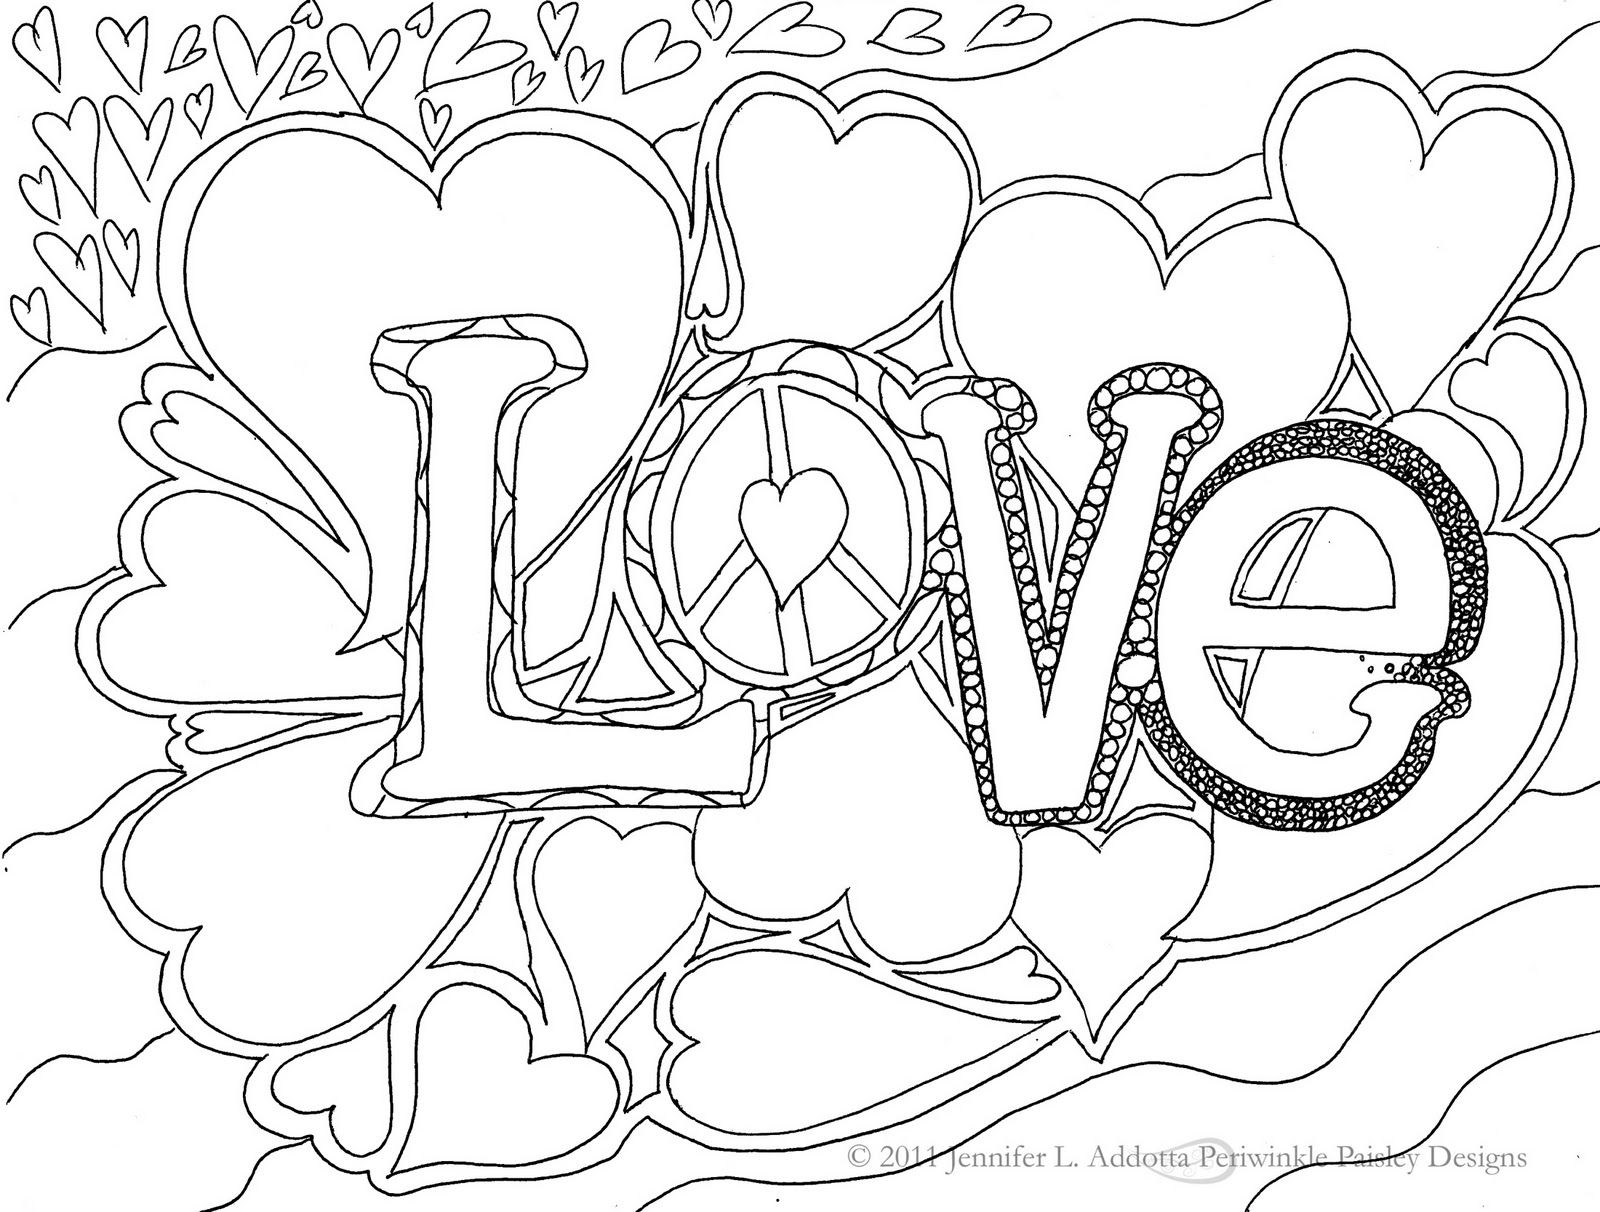 Coloring pictures for adults - American Hippie Art Coloring Page Love